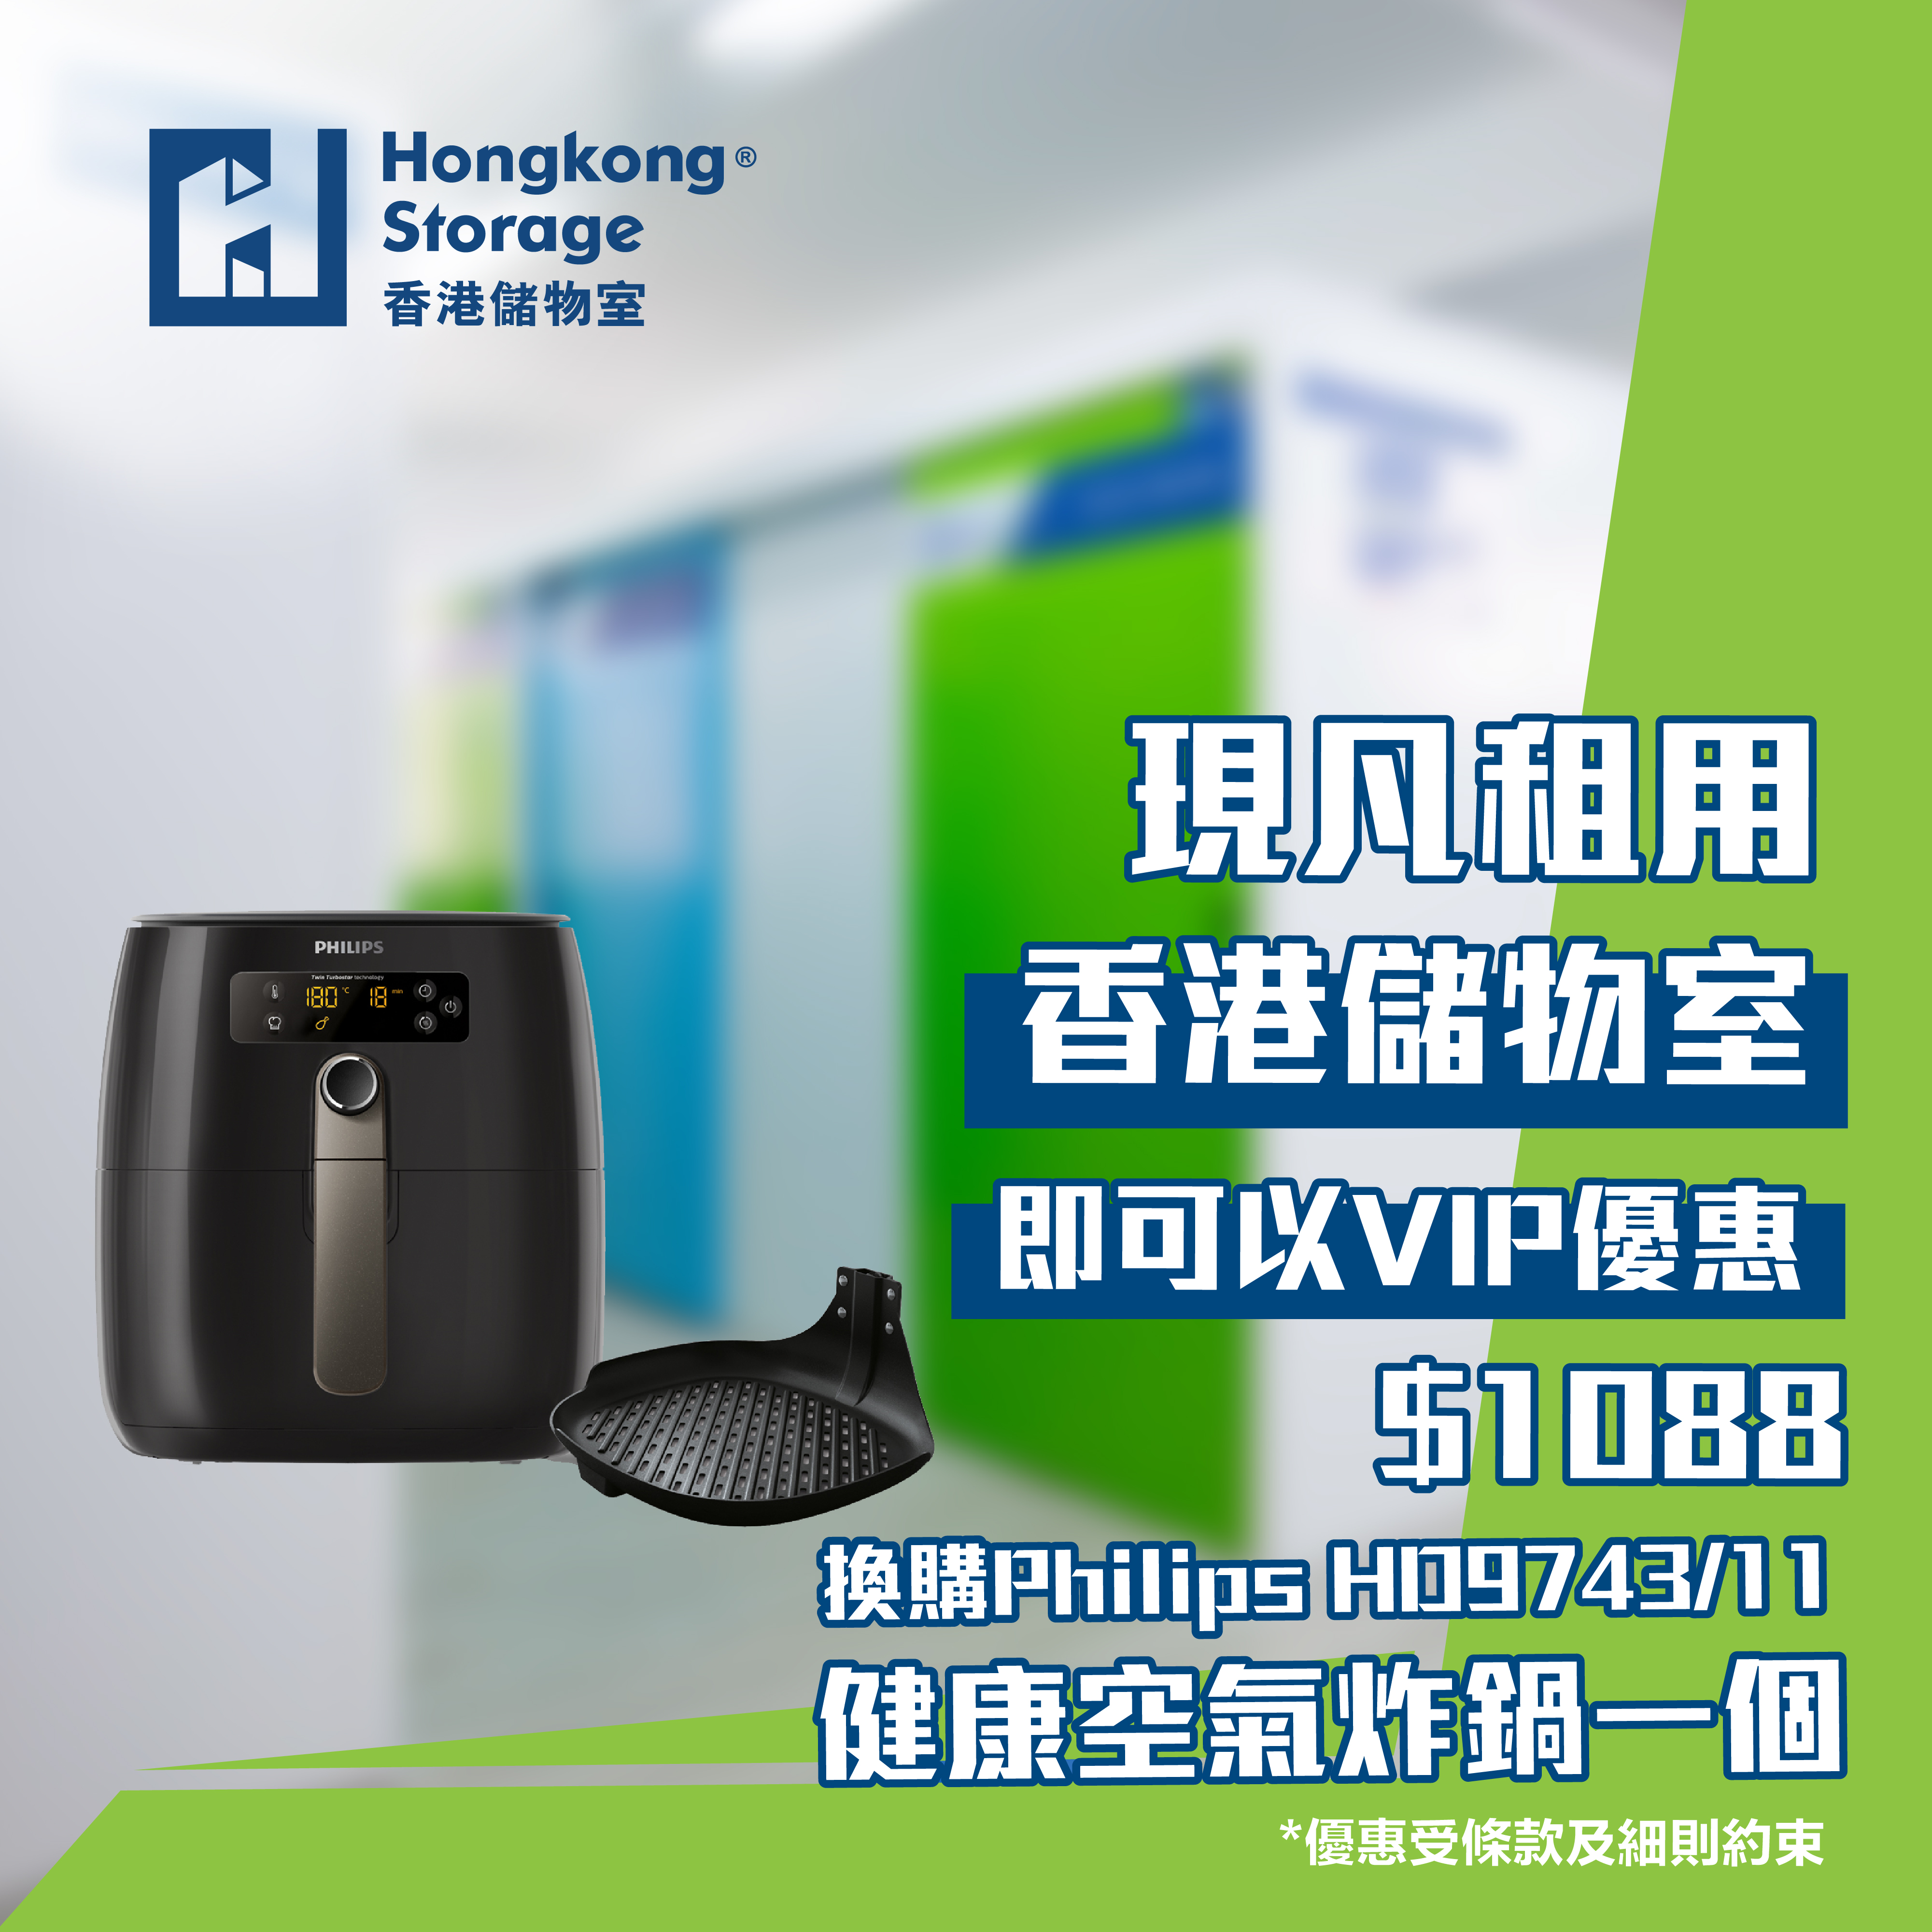 Join Hongkong Storage   Buy a Philips Airfryer at Special Price